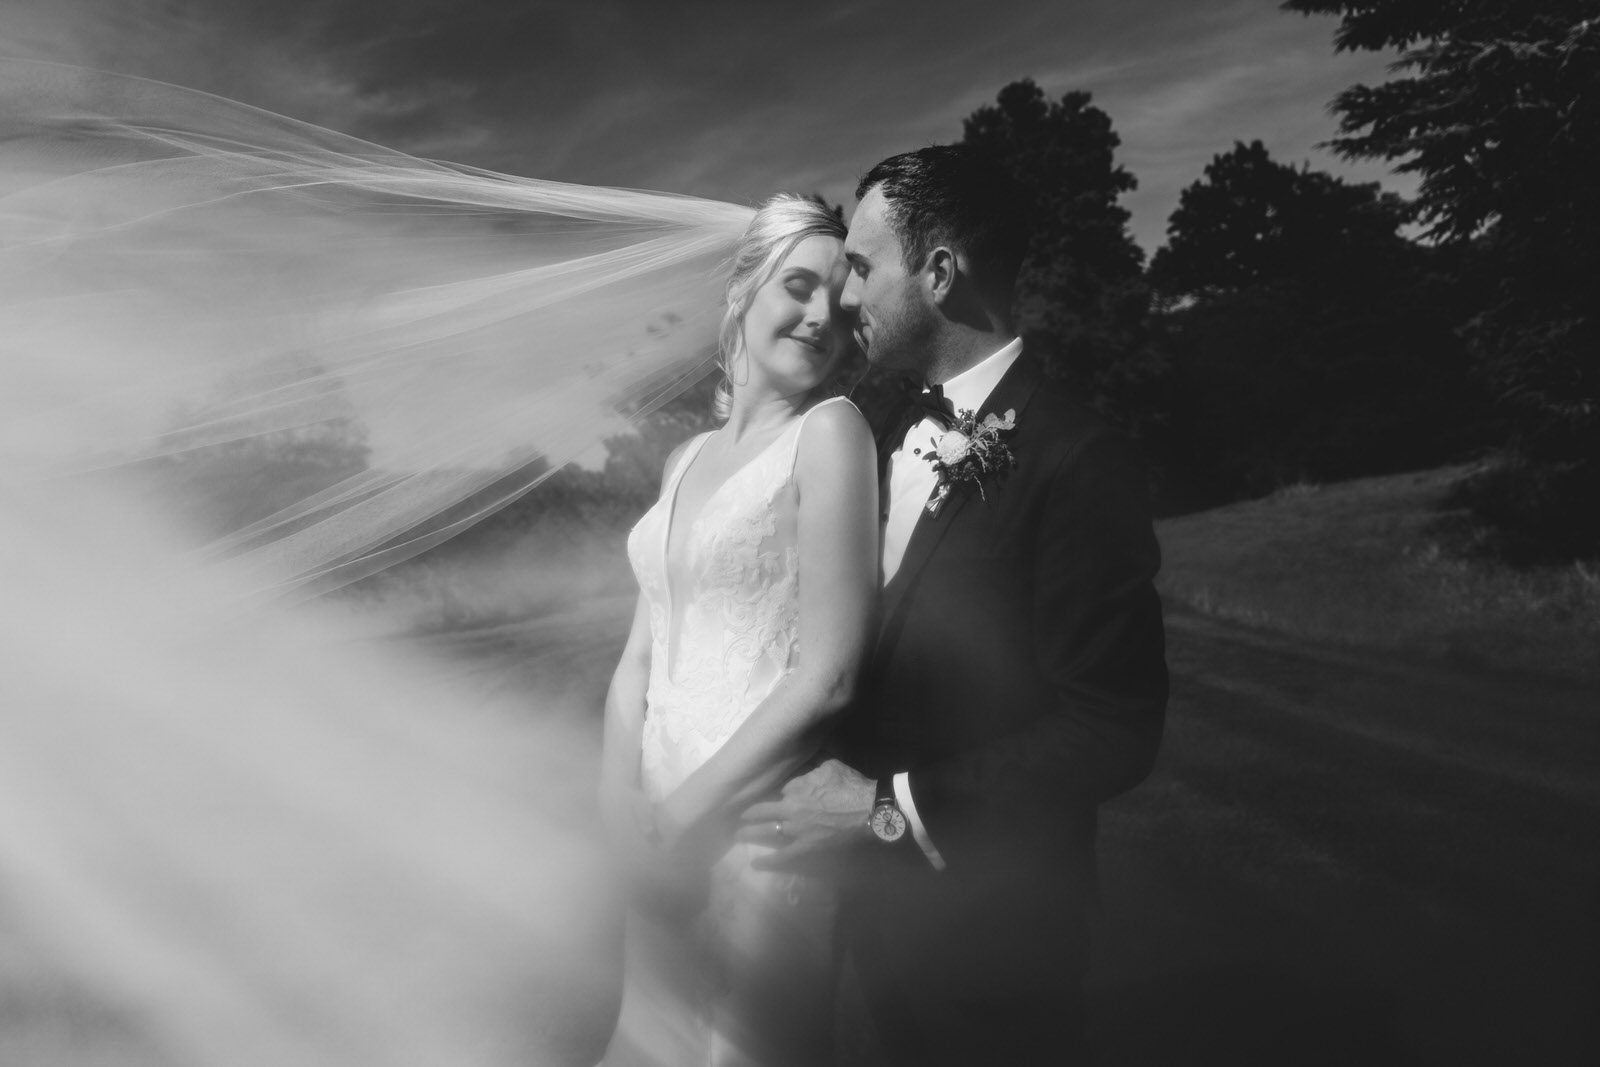 a black and white image of the bride and groom sharing an intimate moment